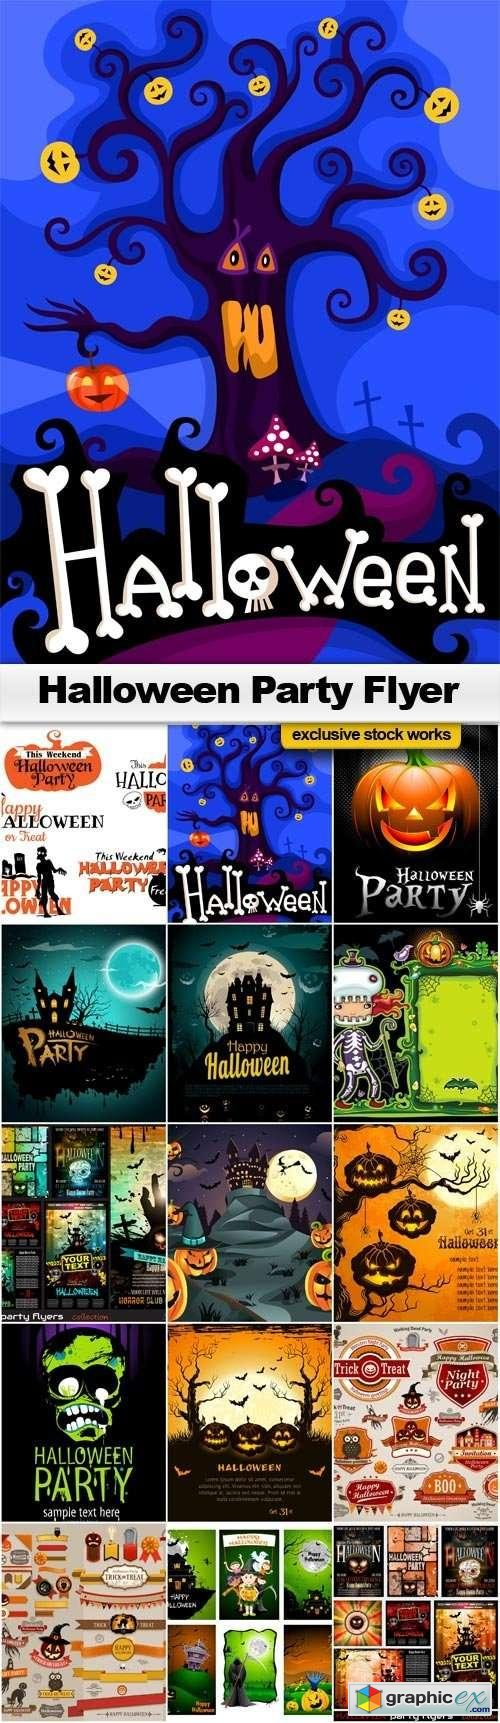 Halloween Party Flyer - 15 EPS